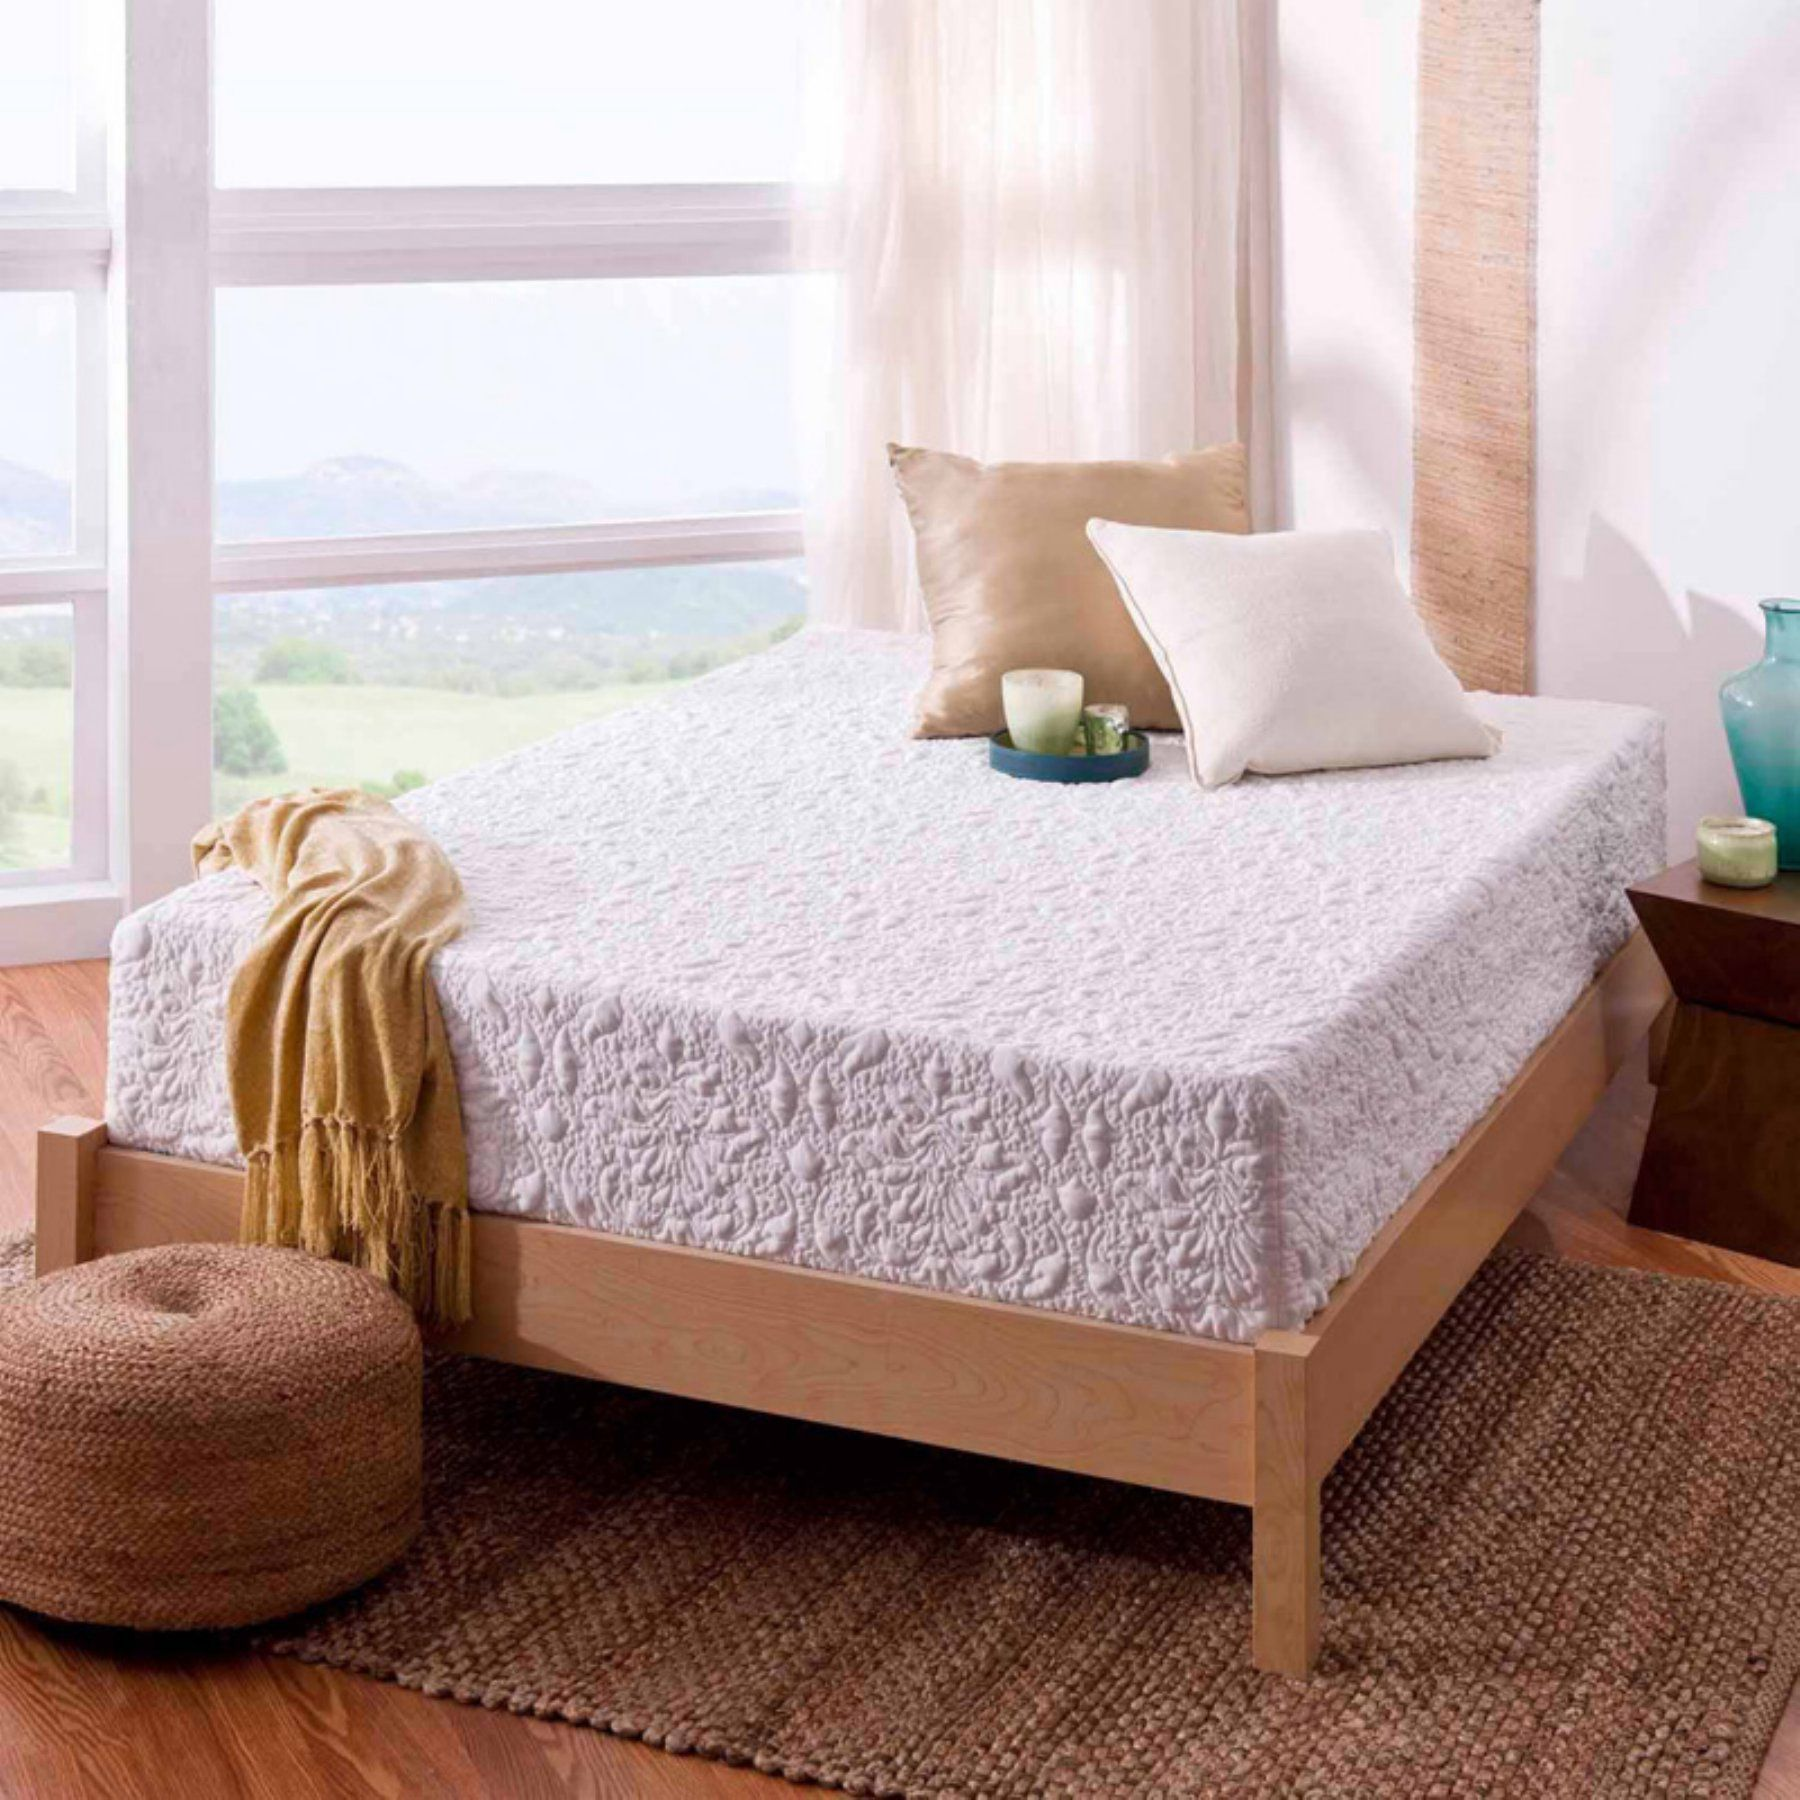 Spa Sensations 12 in. Theratouch Memory Foam Mattress ...